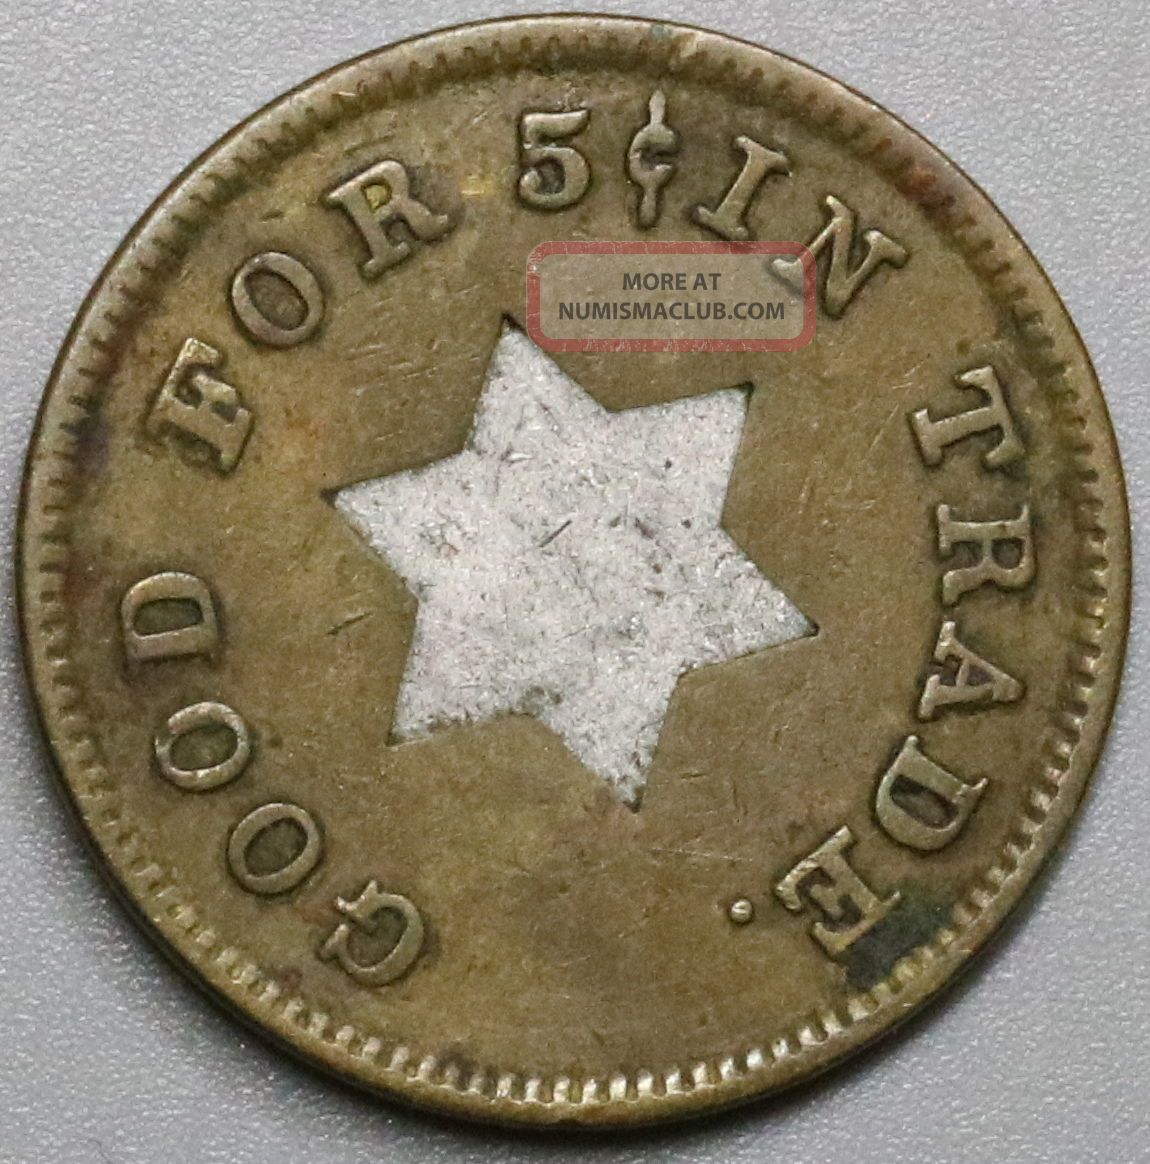 1940s Star Bimetallic Good For 5 Cents Token (17041134r) Exonumia photo